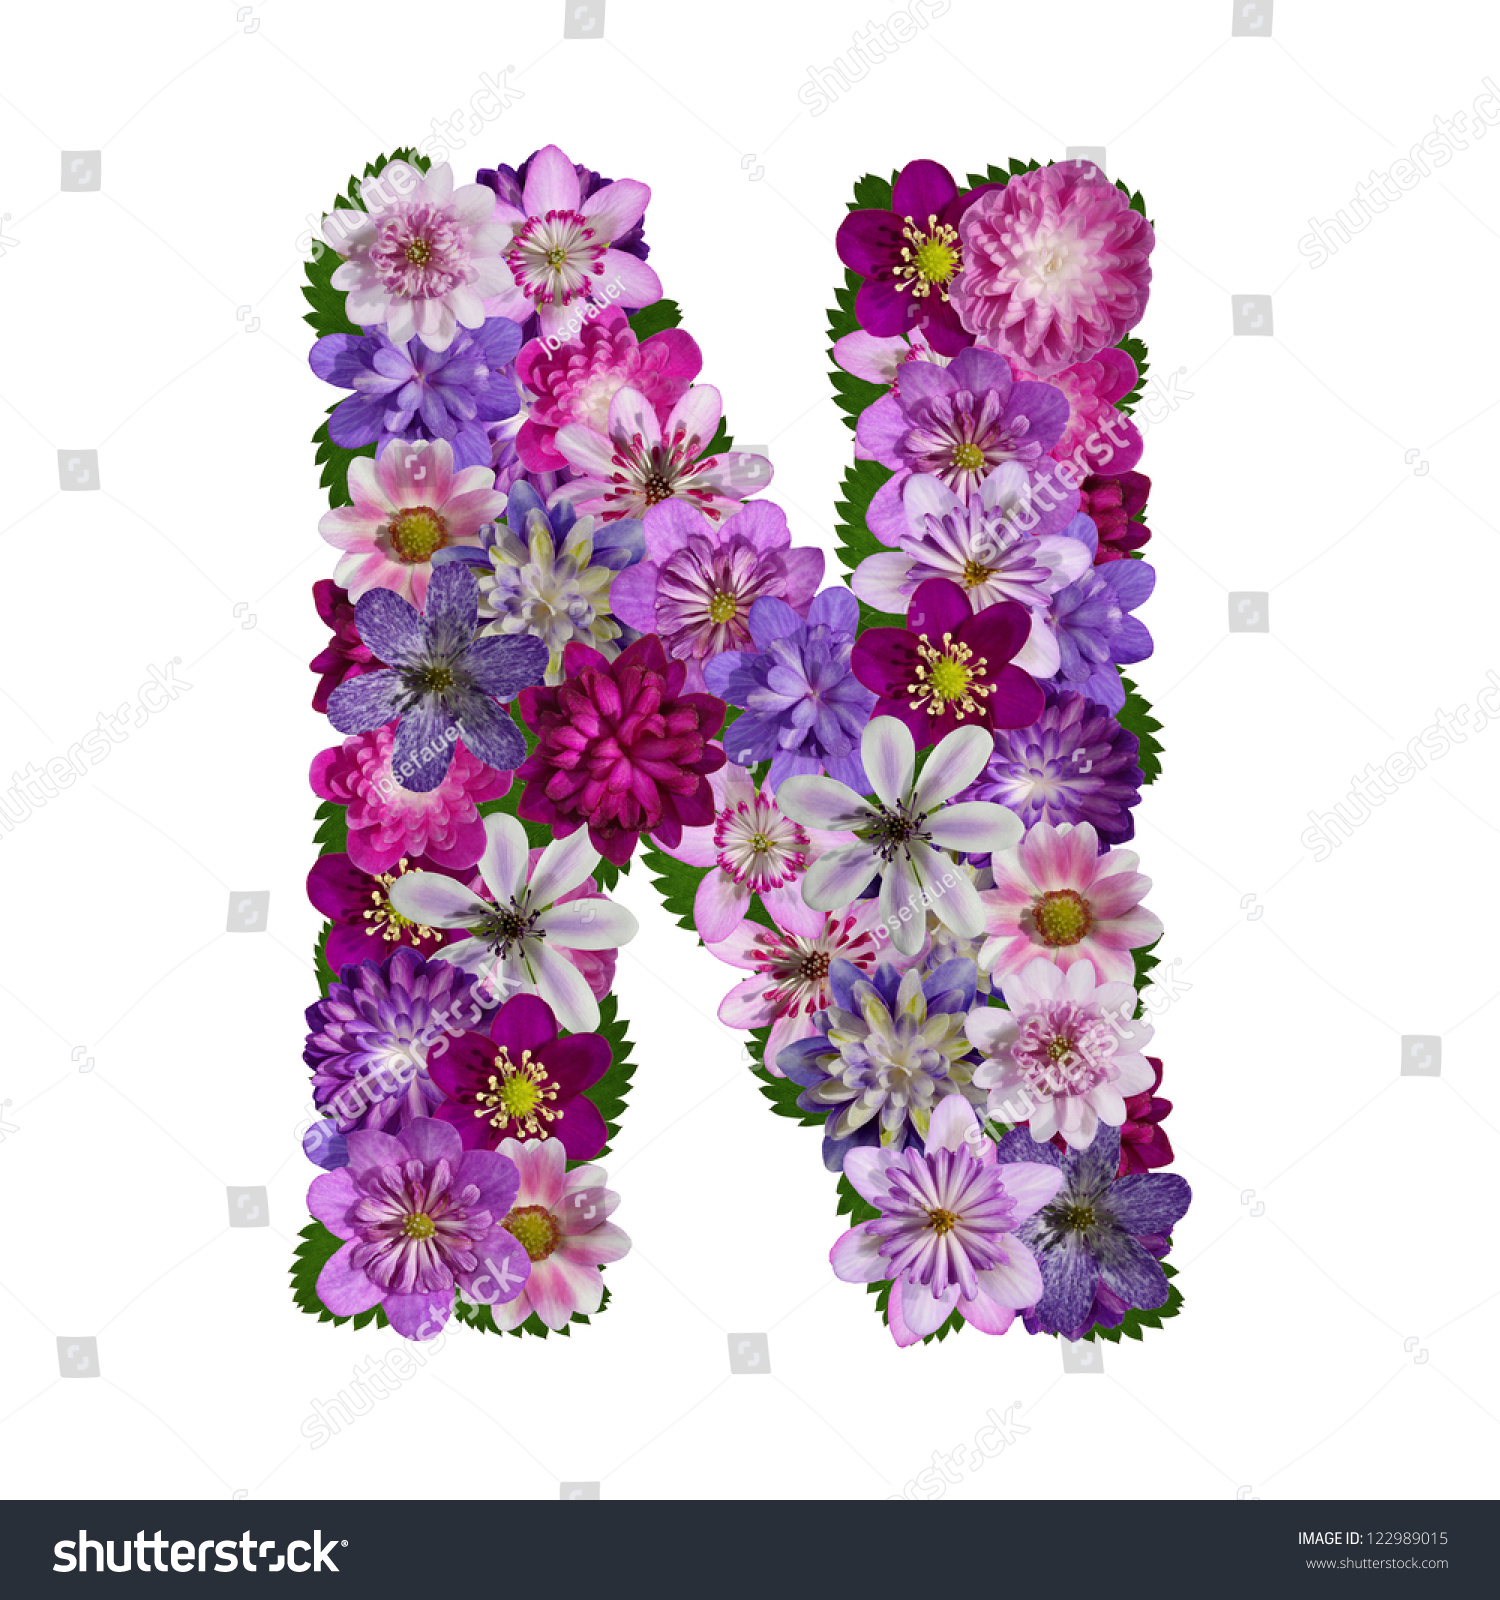 Pictures Of Flowers That Start With The Letter L